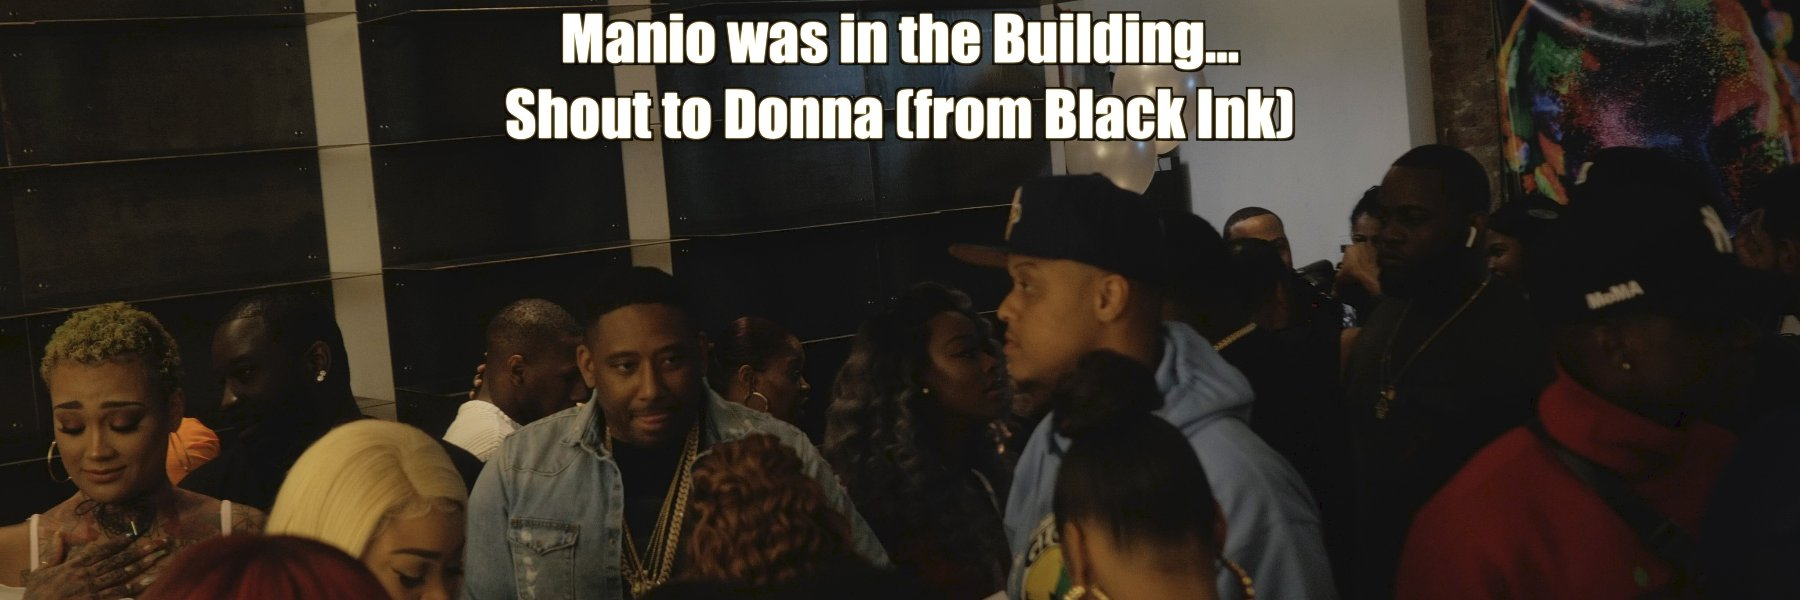 Home of the HIttaz Season 3 episode 2 (Manio & Donna from Black Ink)